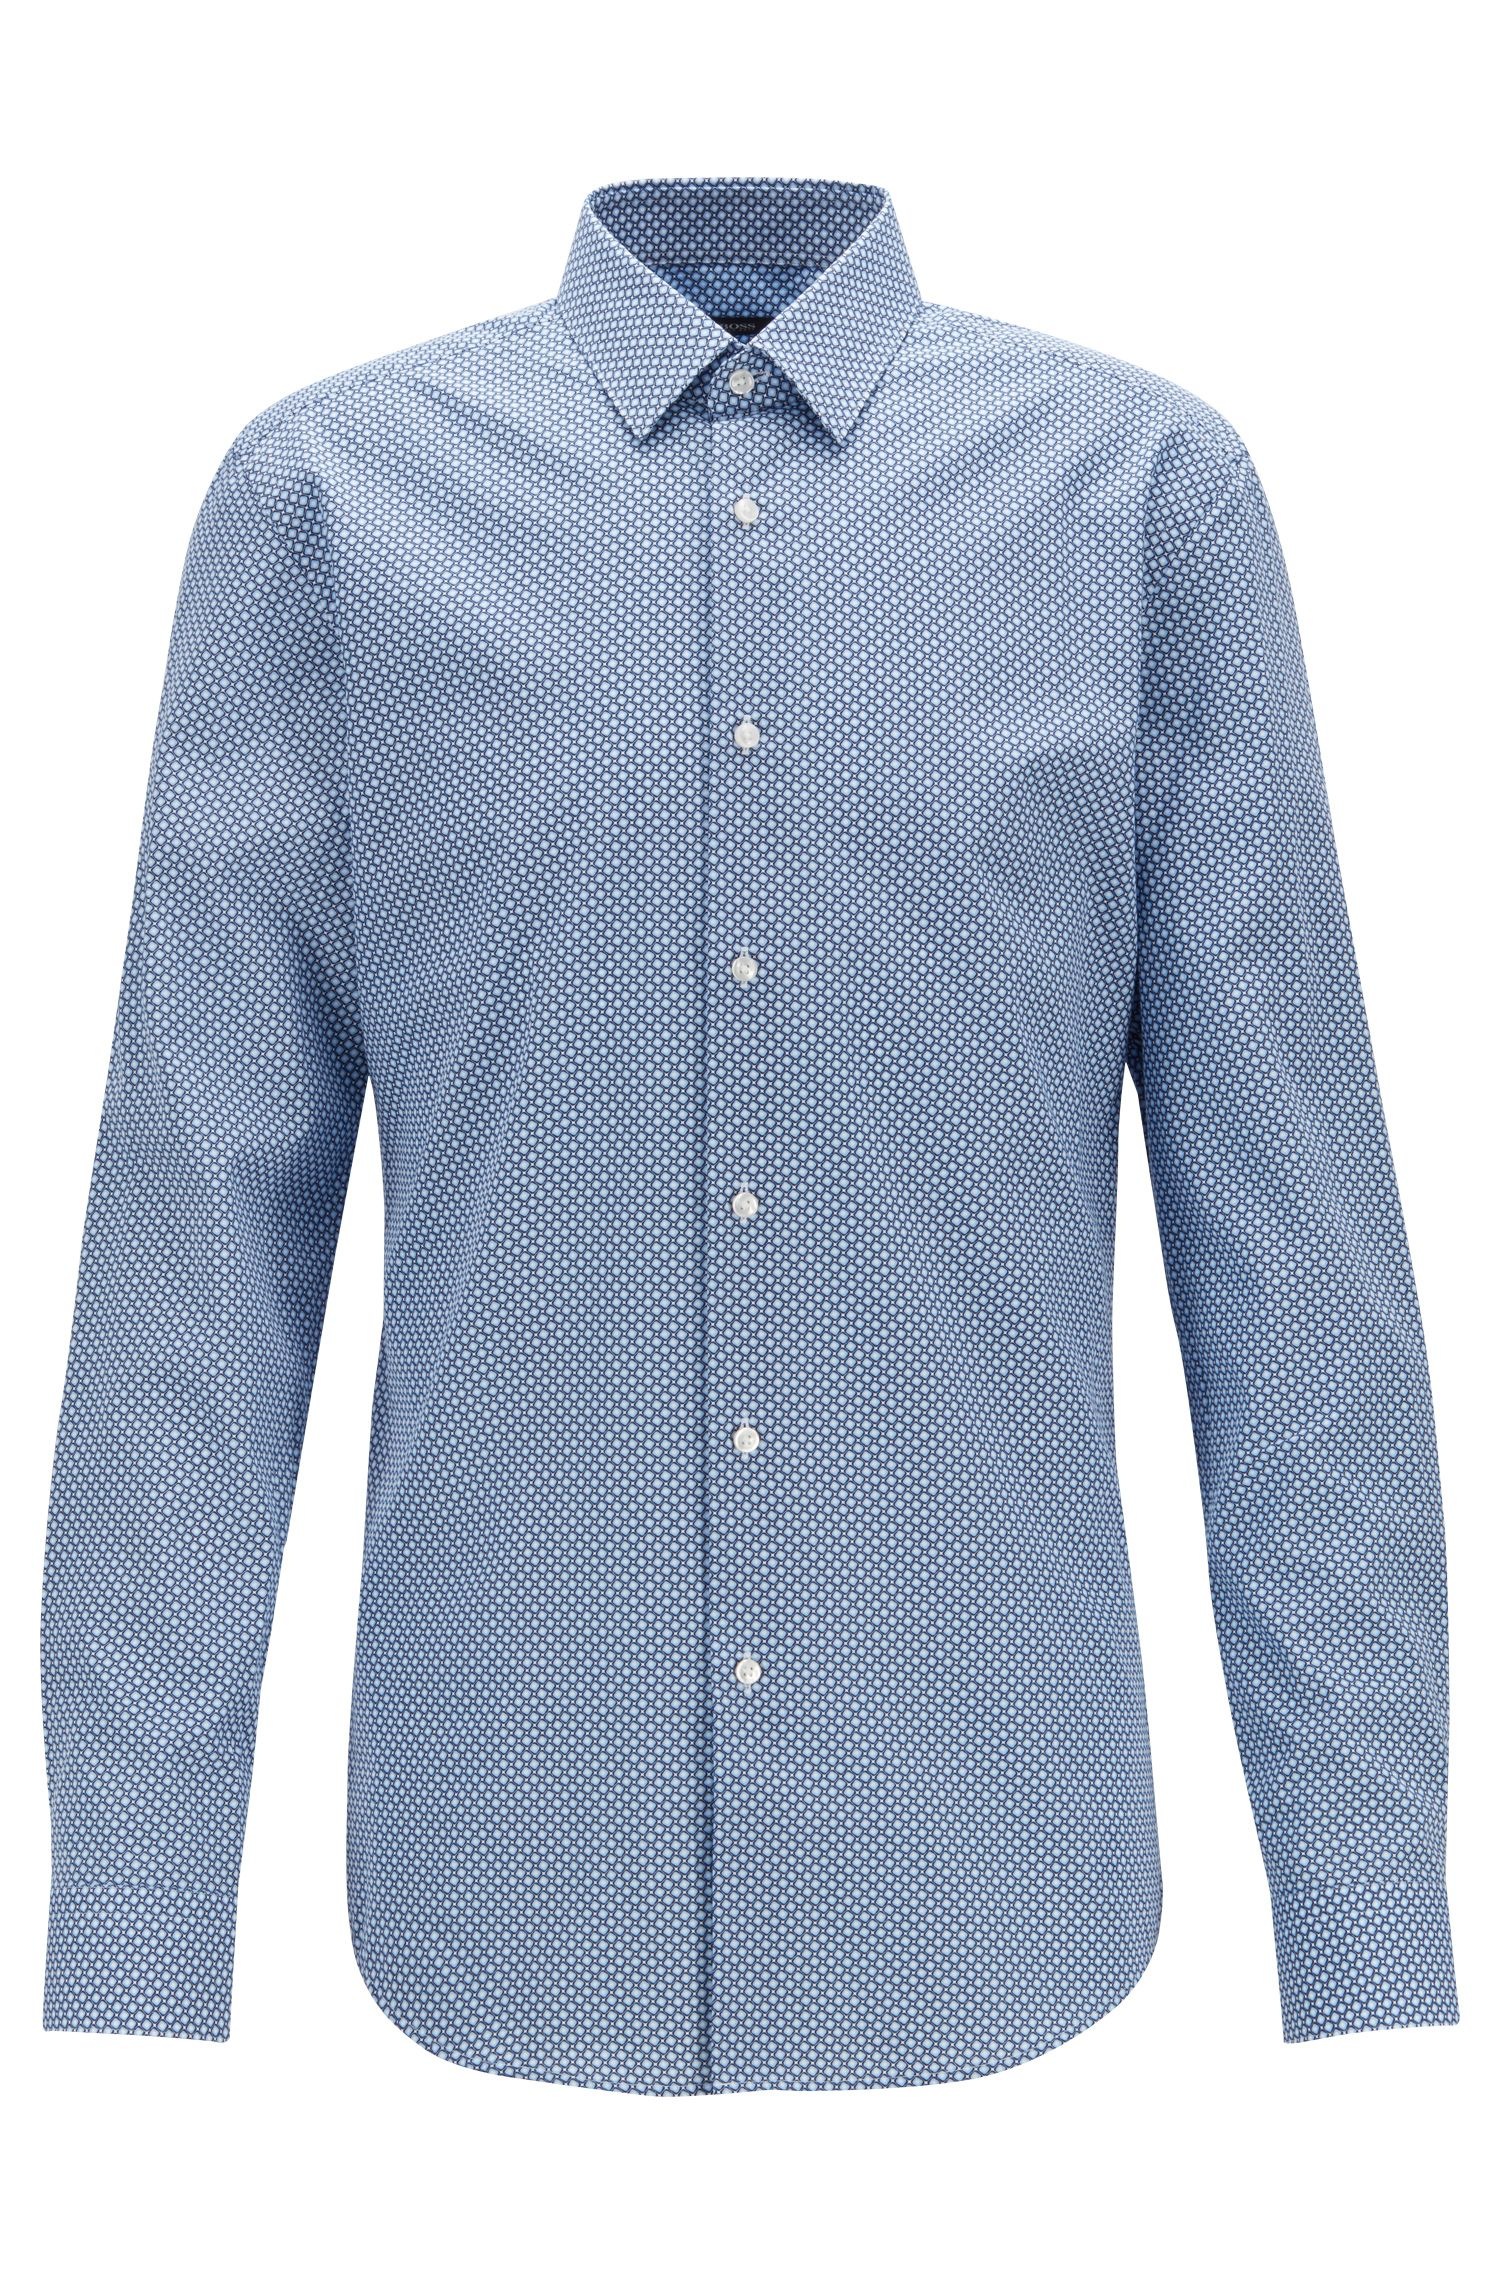 Slim-fit shirt in geometric-print cotton poplin, Blue